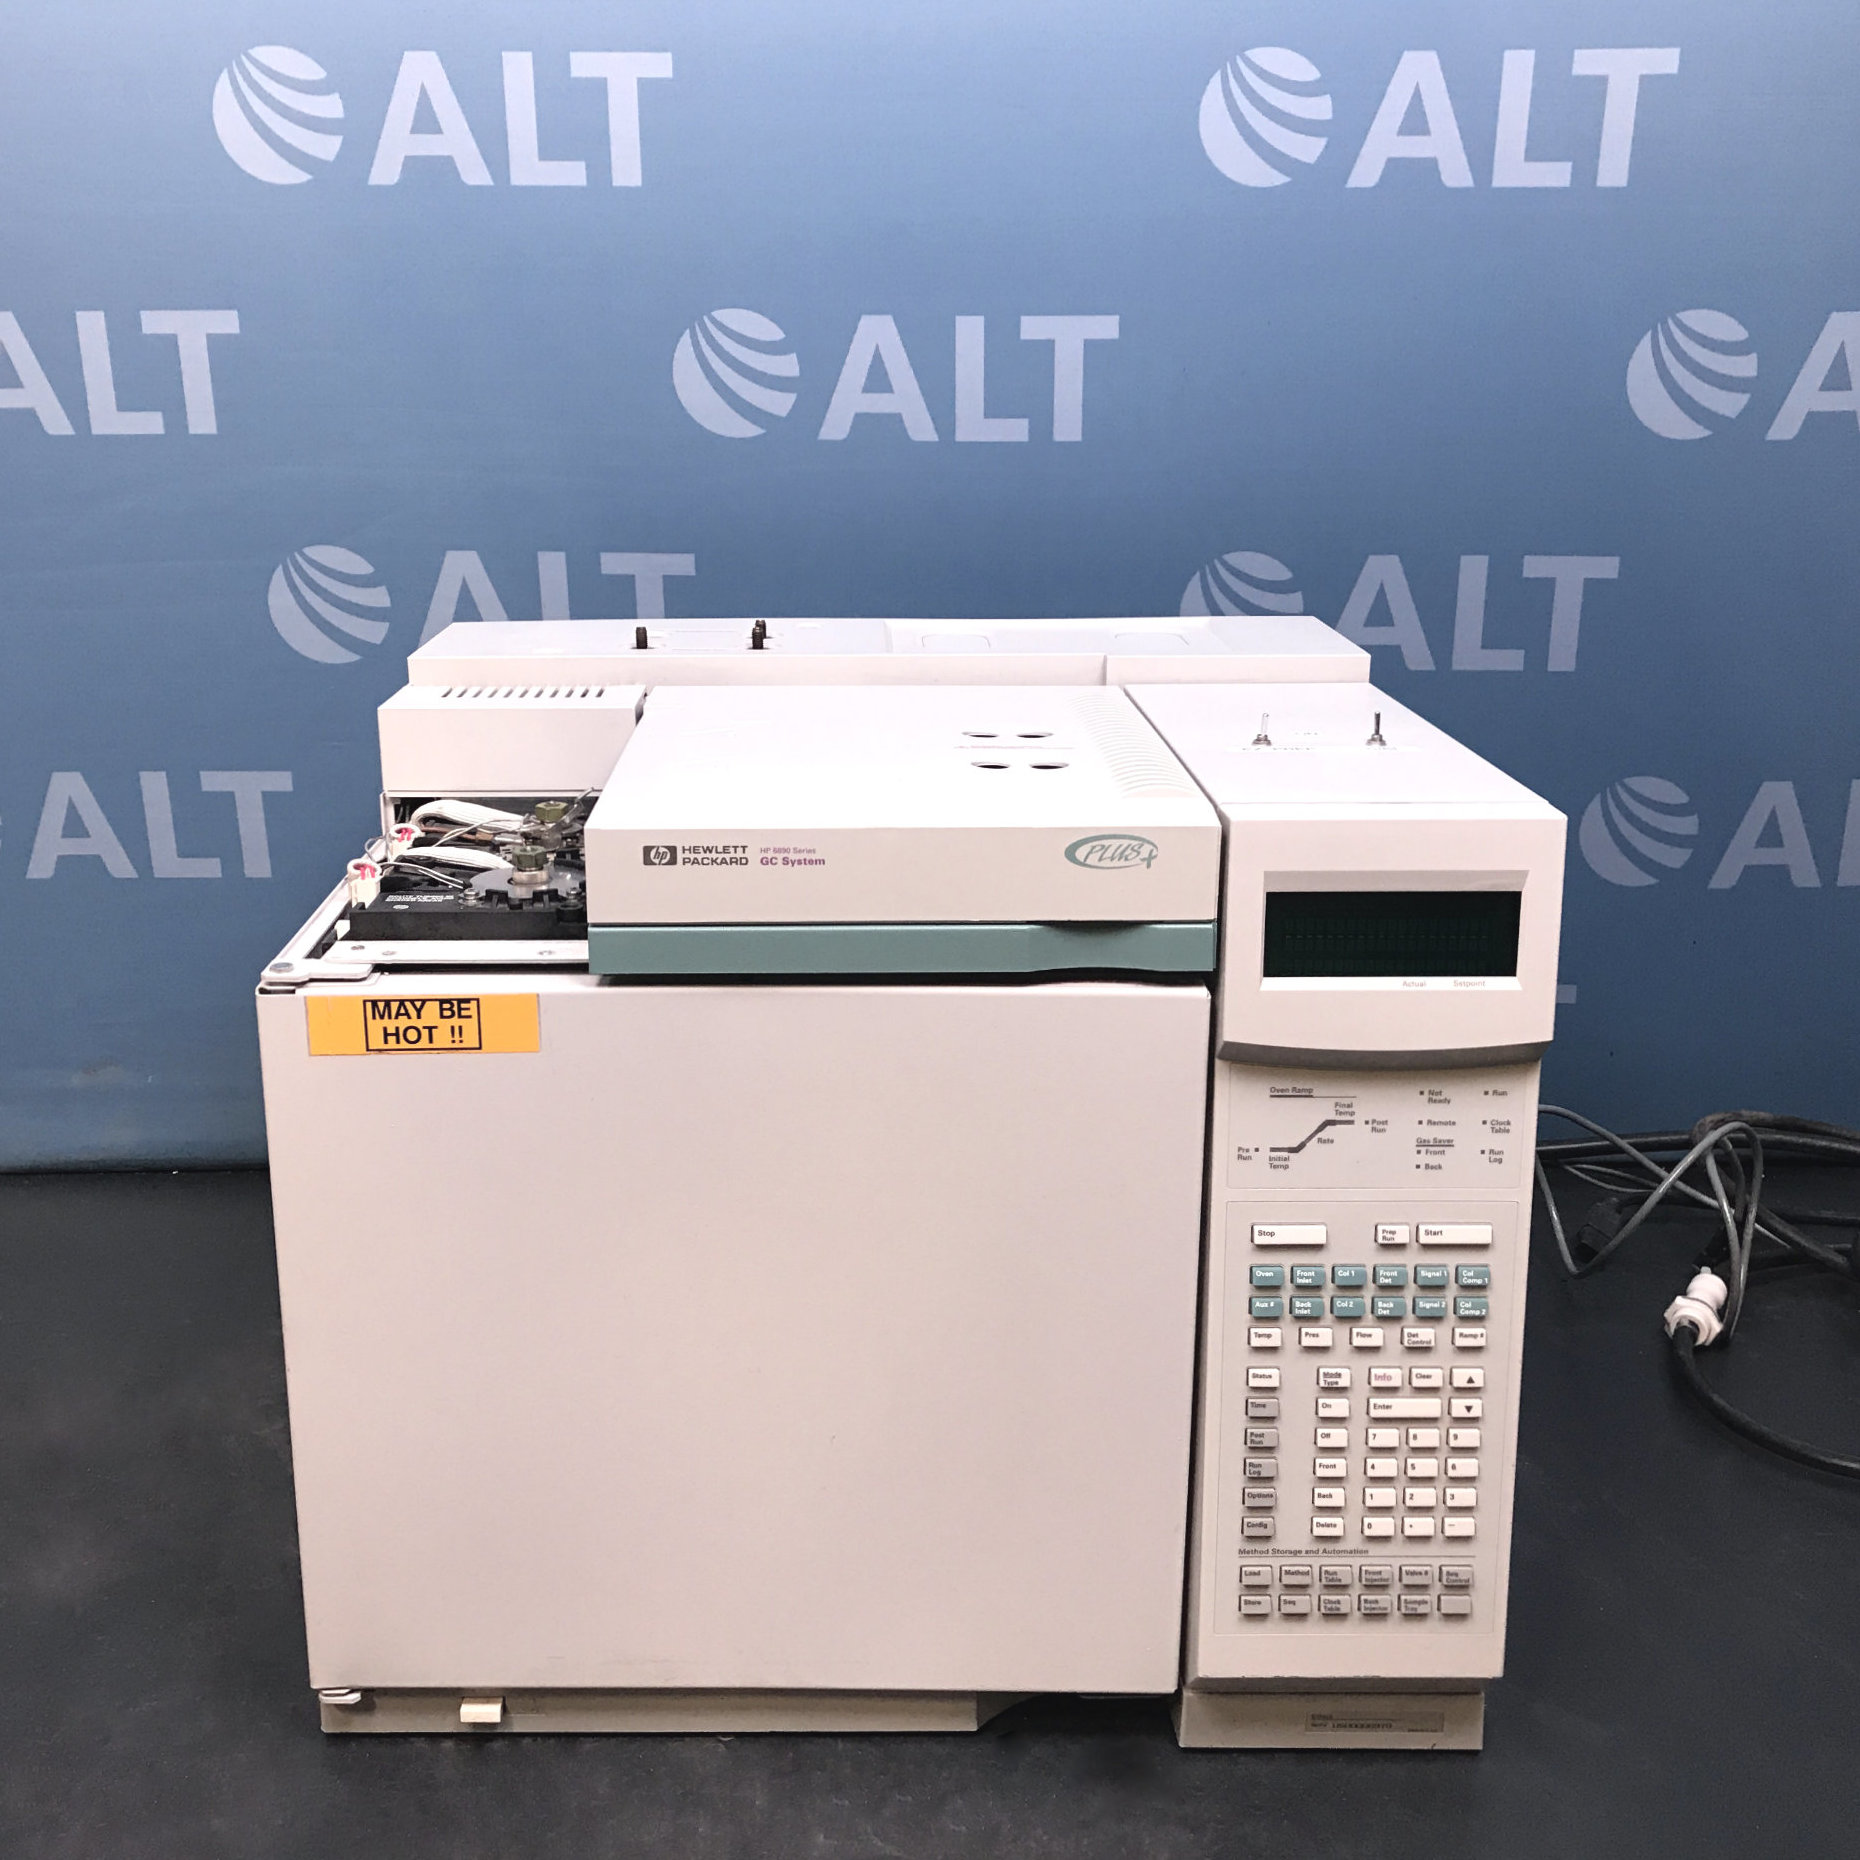 6890 (G1540A) Gas Chromatograph (GC) System Name